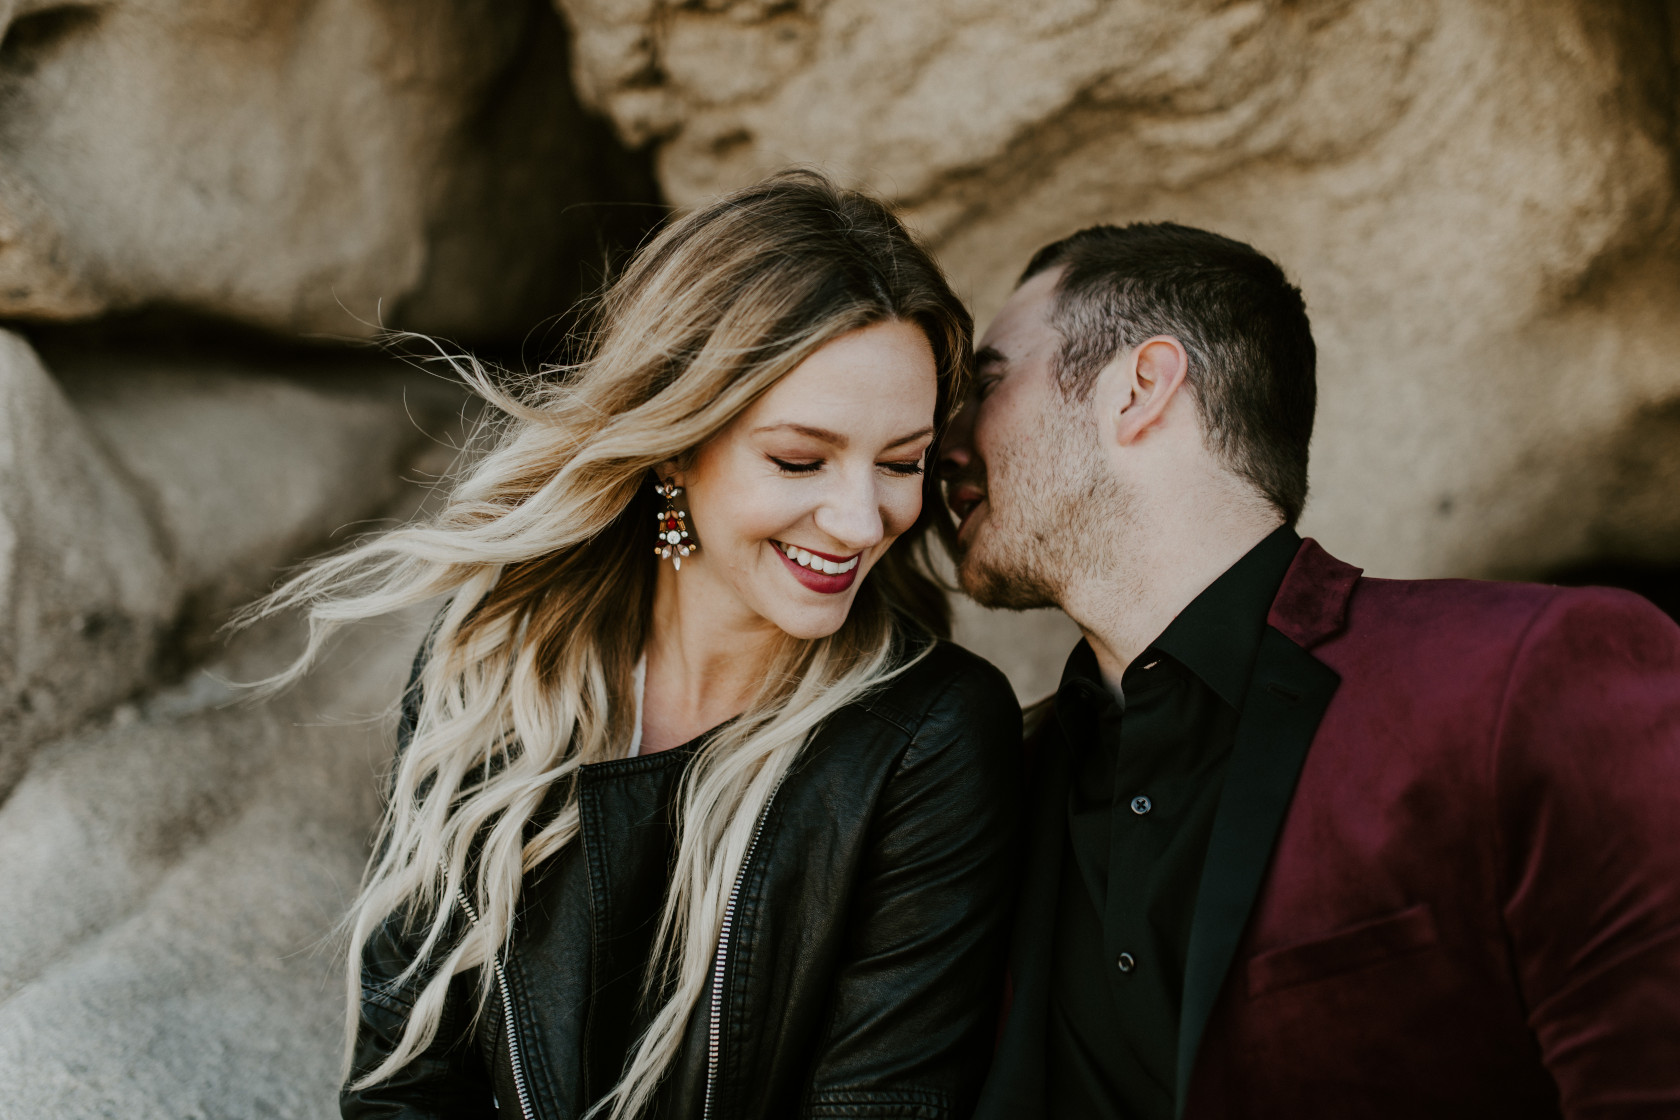 Jeremy whispers to Alyssa. Elopement wedding photography at Joshua Tree National Park by Sienna Plus Josh.